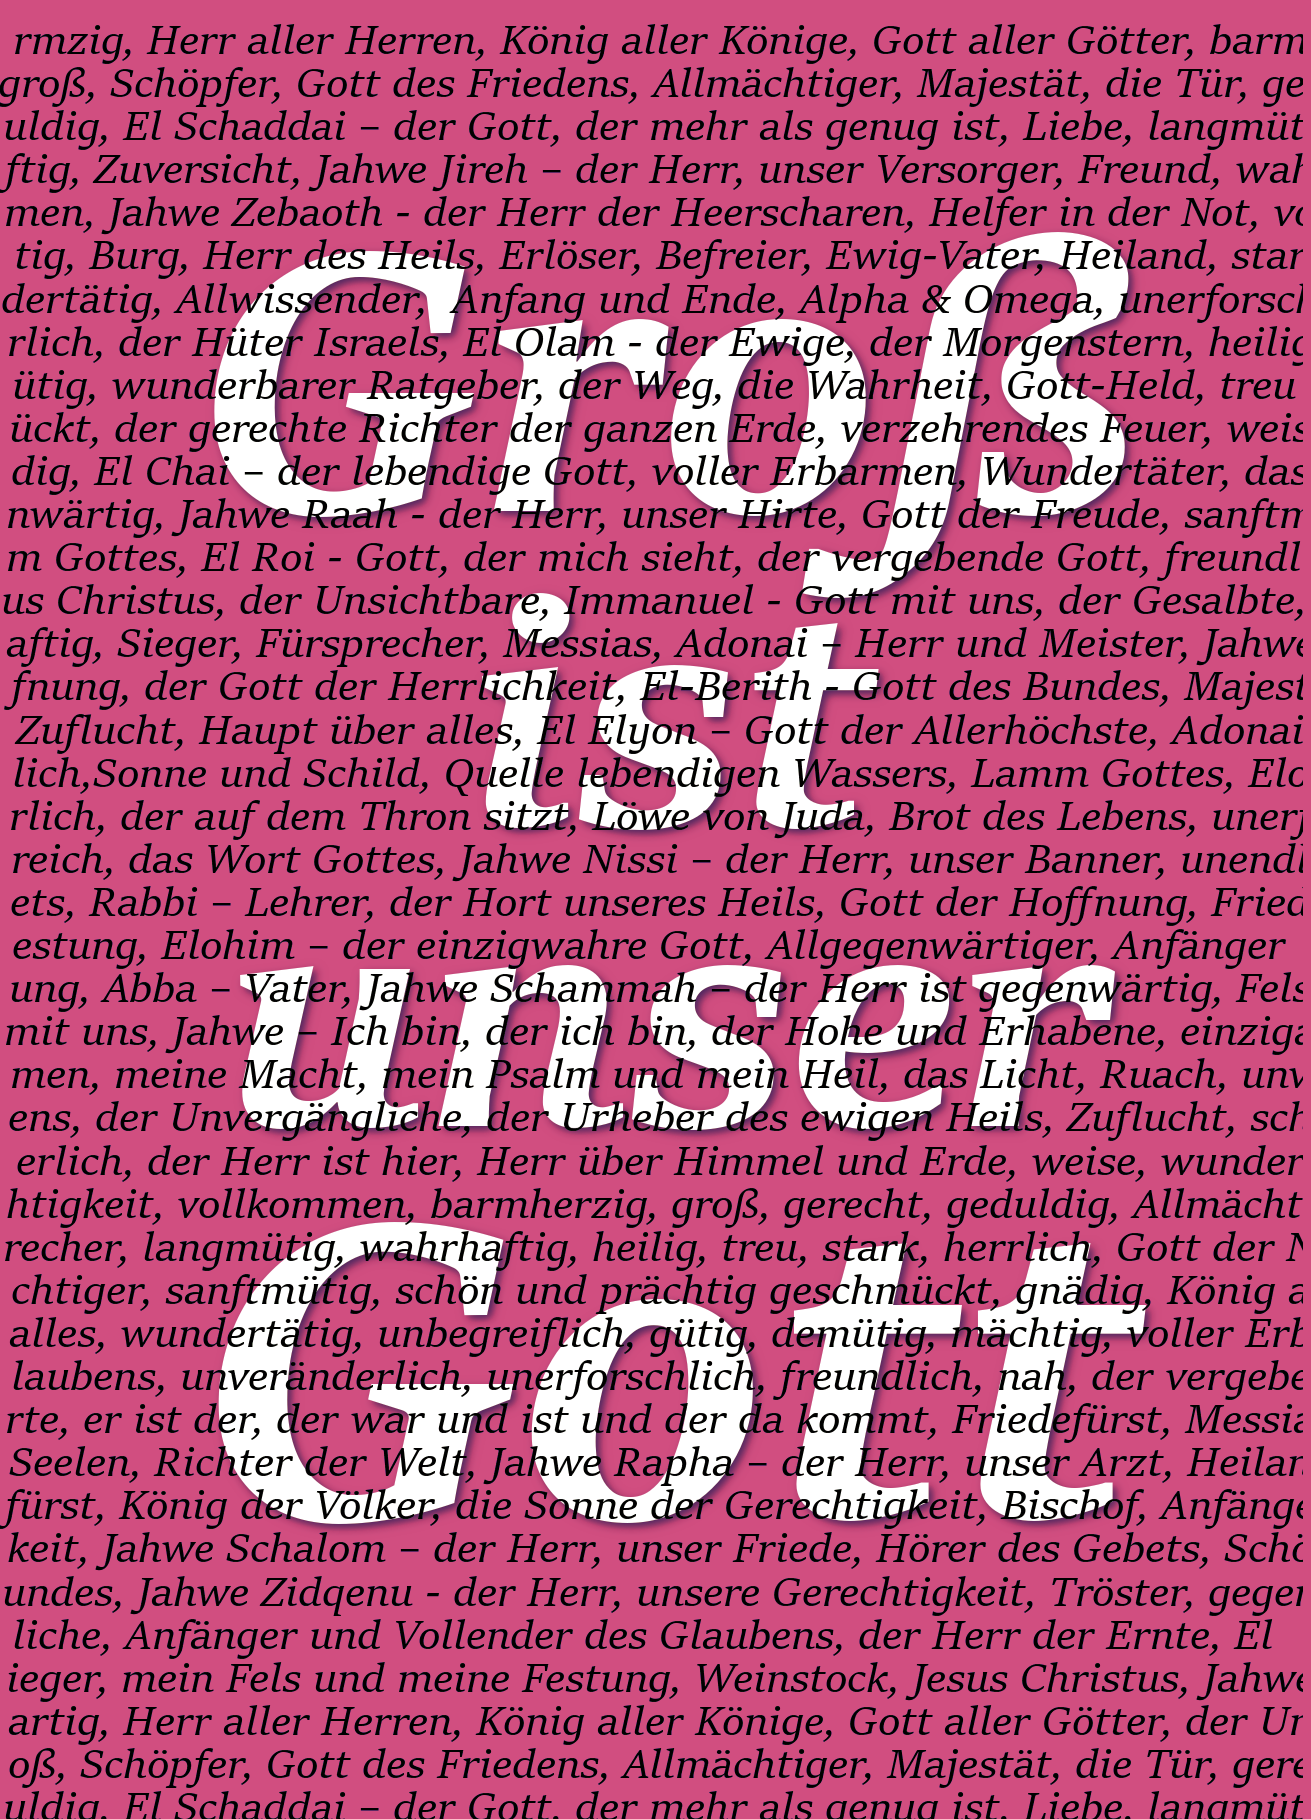 grossistunsergott